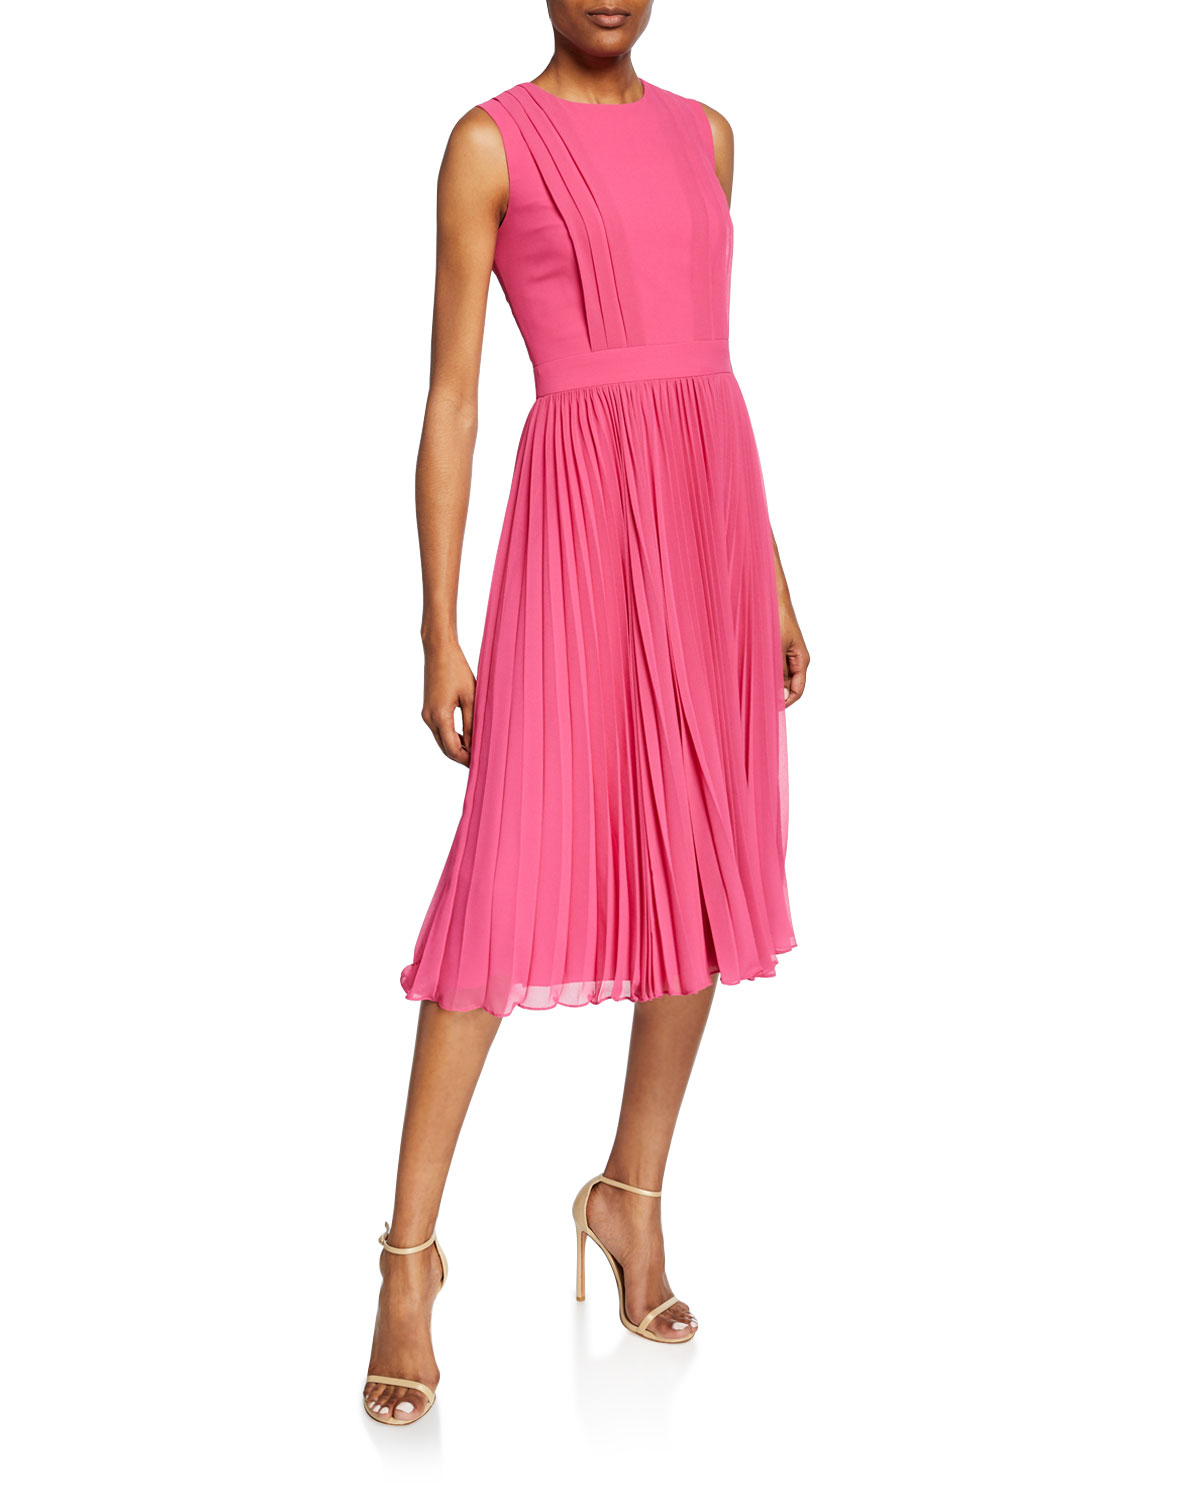 Badgley Mischka Dresses CREWNECK SLEEVELESS PLEATED COCKTAIL DRESS